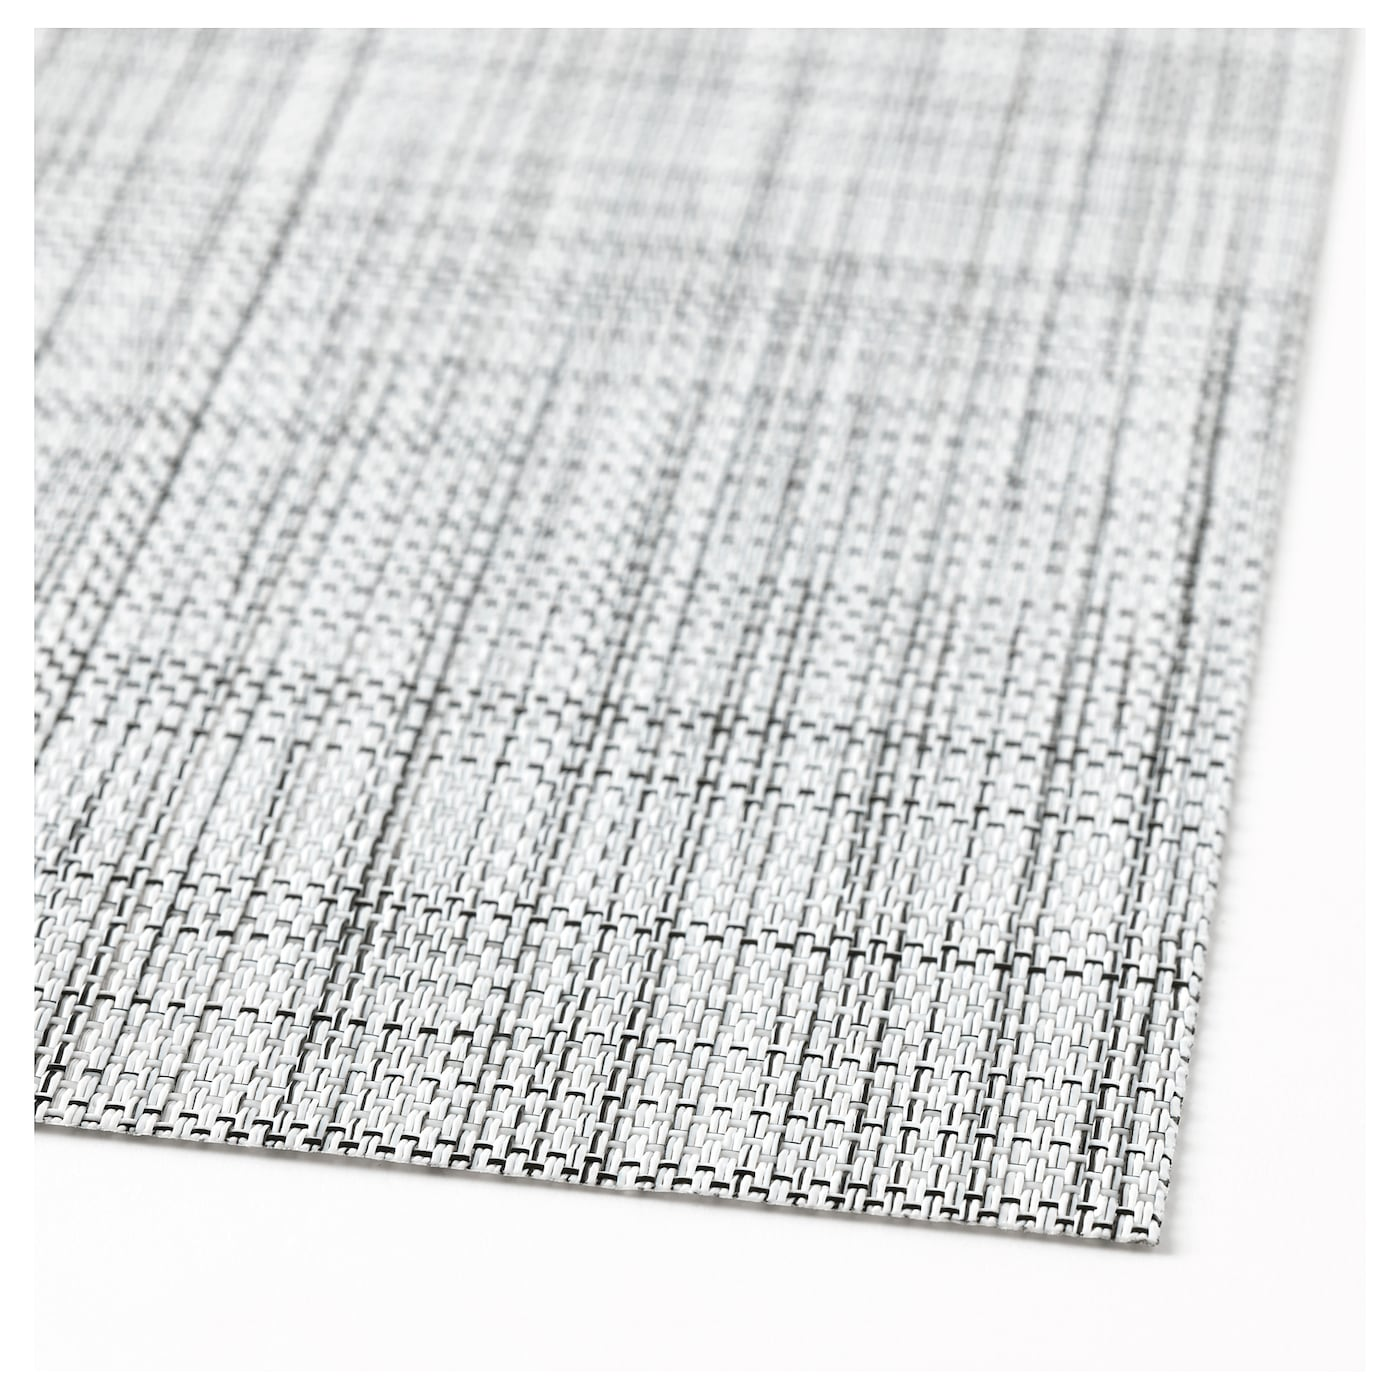 IKEA SNOBBIG place mat Protects the table top surface and reduces noise from glasses and mugs.